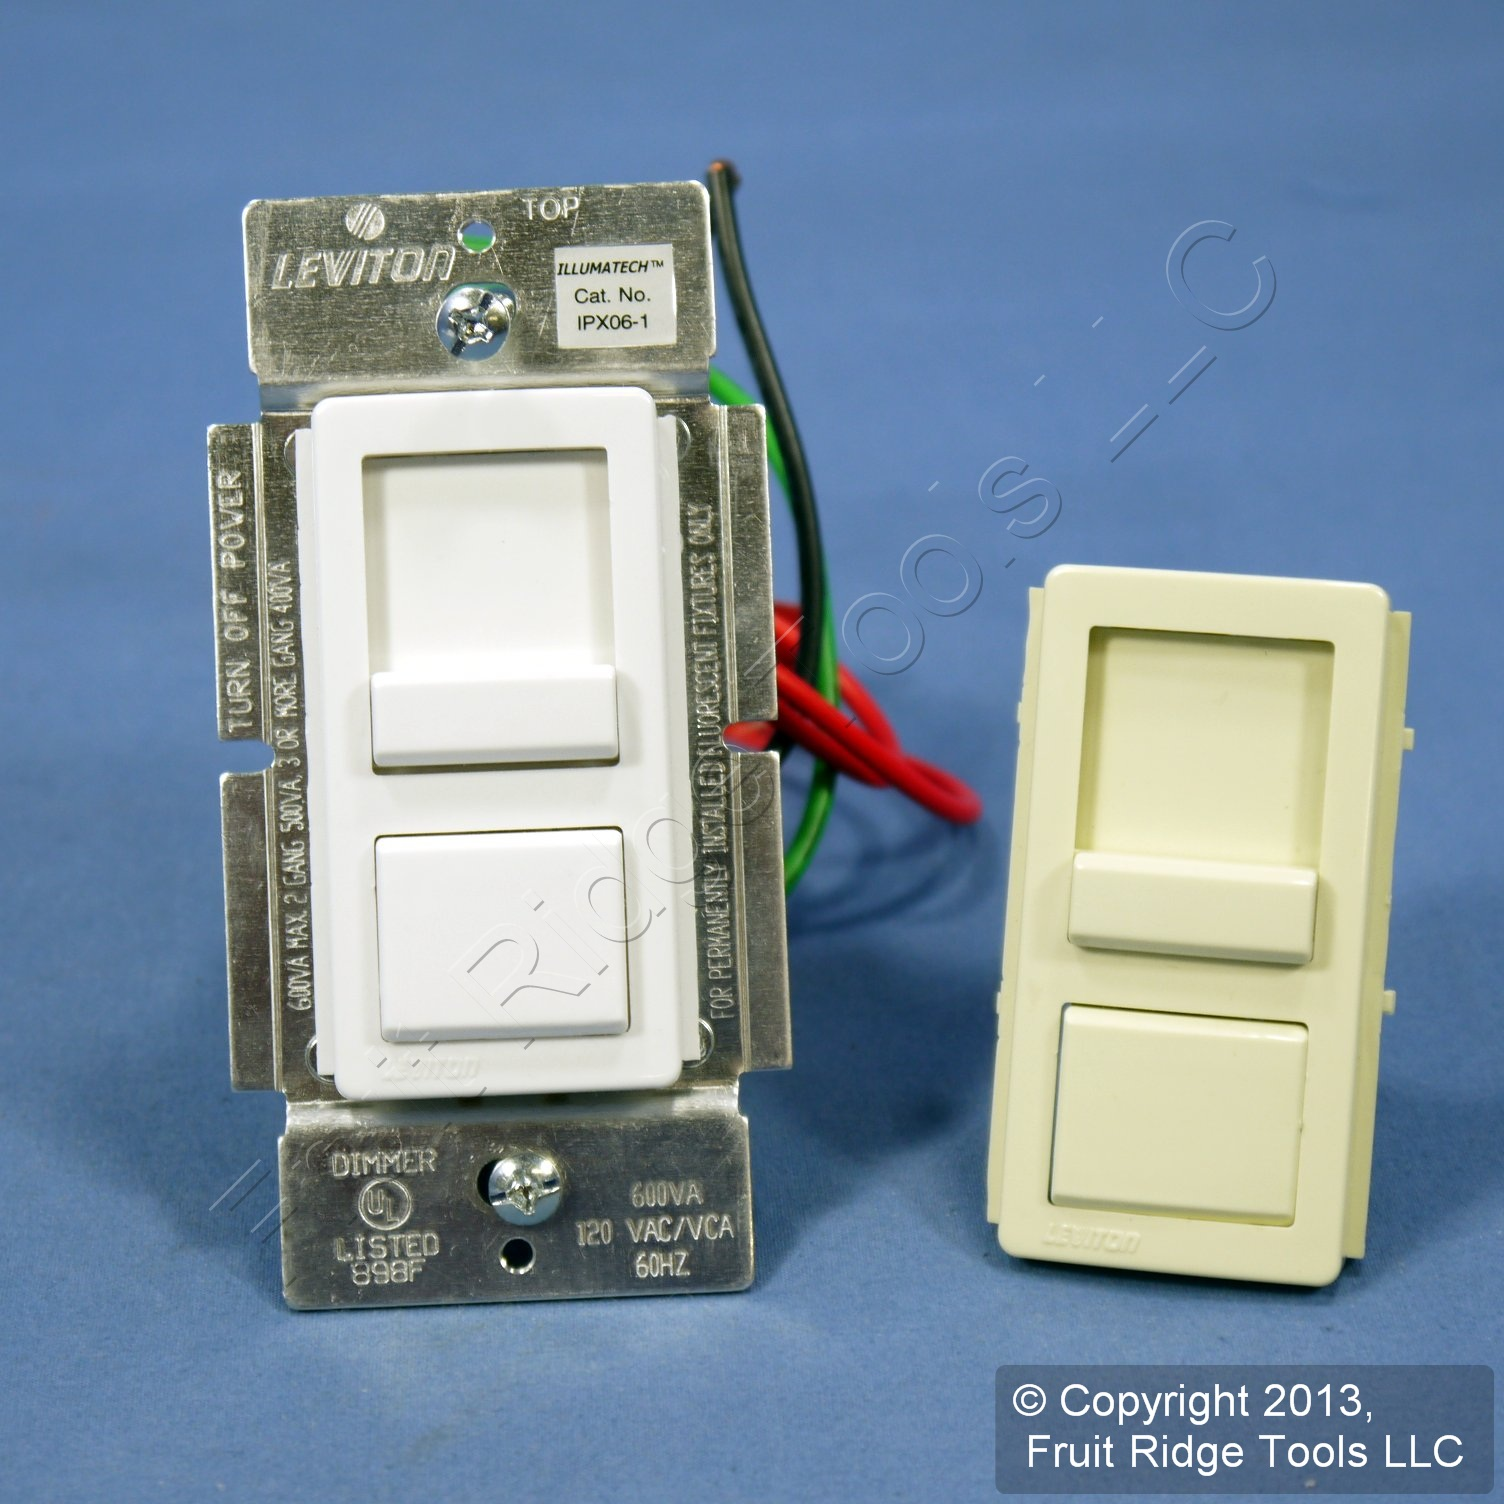 Fluorescent Light Dim: Leviton White Fluorescent Light Dimmer Switch Mark X